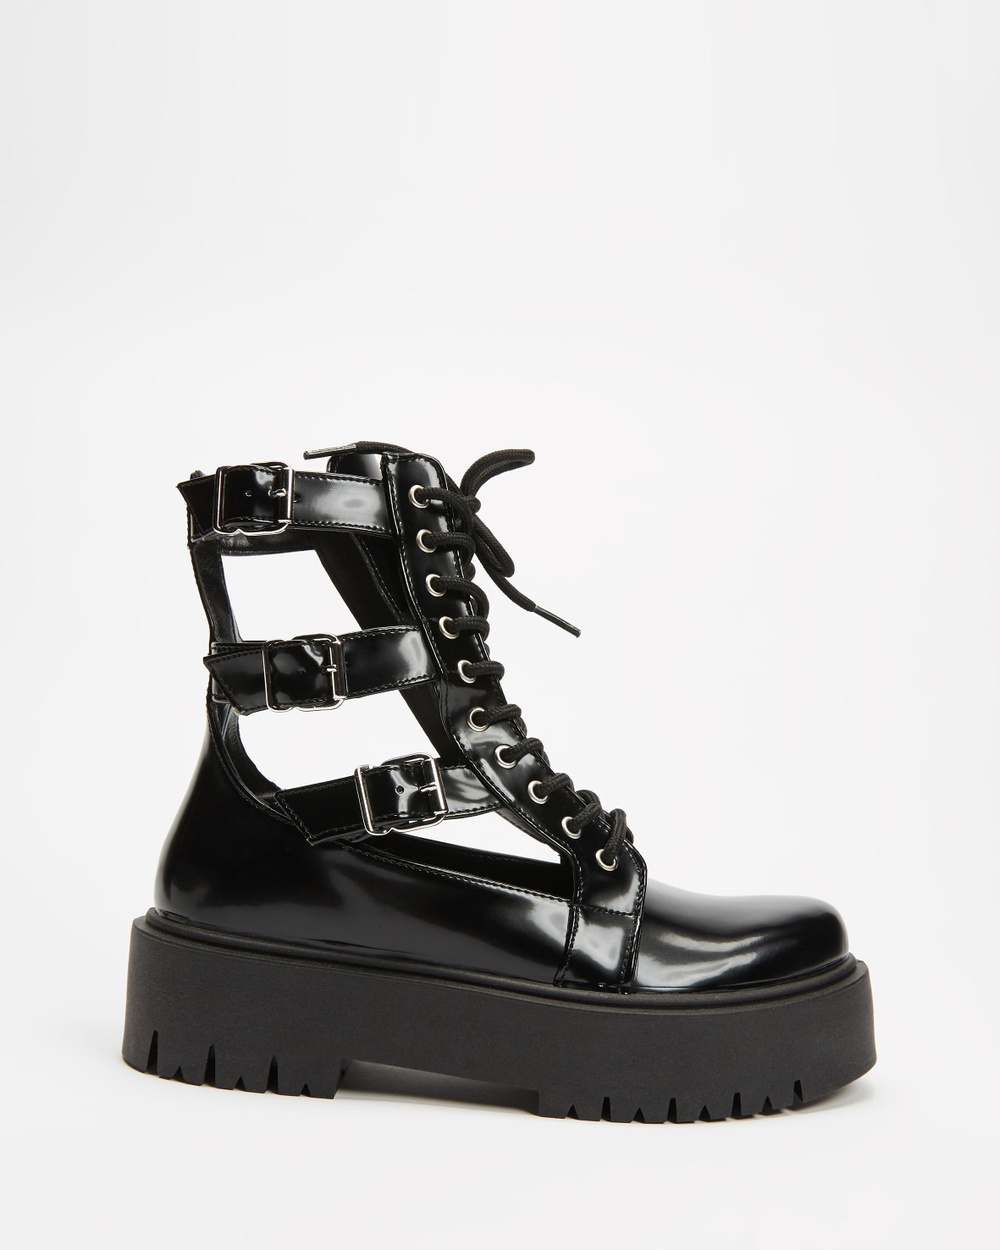 TOPSHOP Babe Cut Out Buckle Boot Boots Black Cut-Out